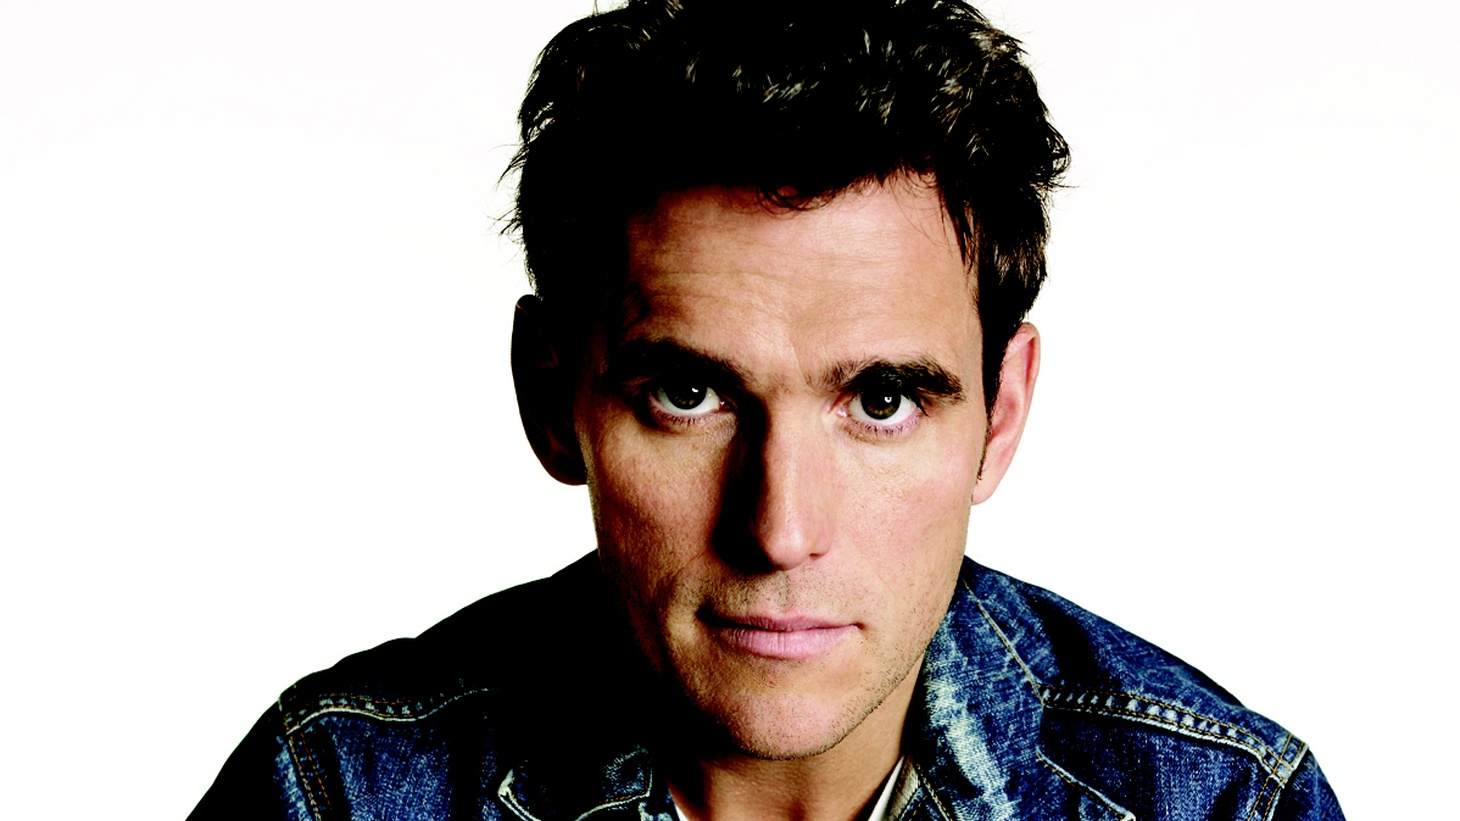 Actor Matt Dillon's deep appreciation for the Beat generation, hot jazz and Latin music is on display in his Guest DJ set. He also praises the Clash's musical exploration and tells us how Cuban scat singer El Gran Fellove inspires him as an actor.